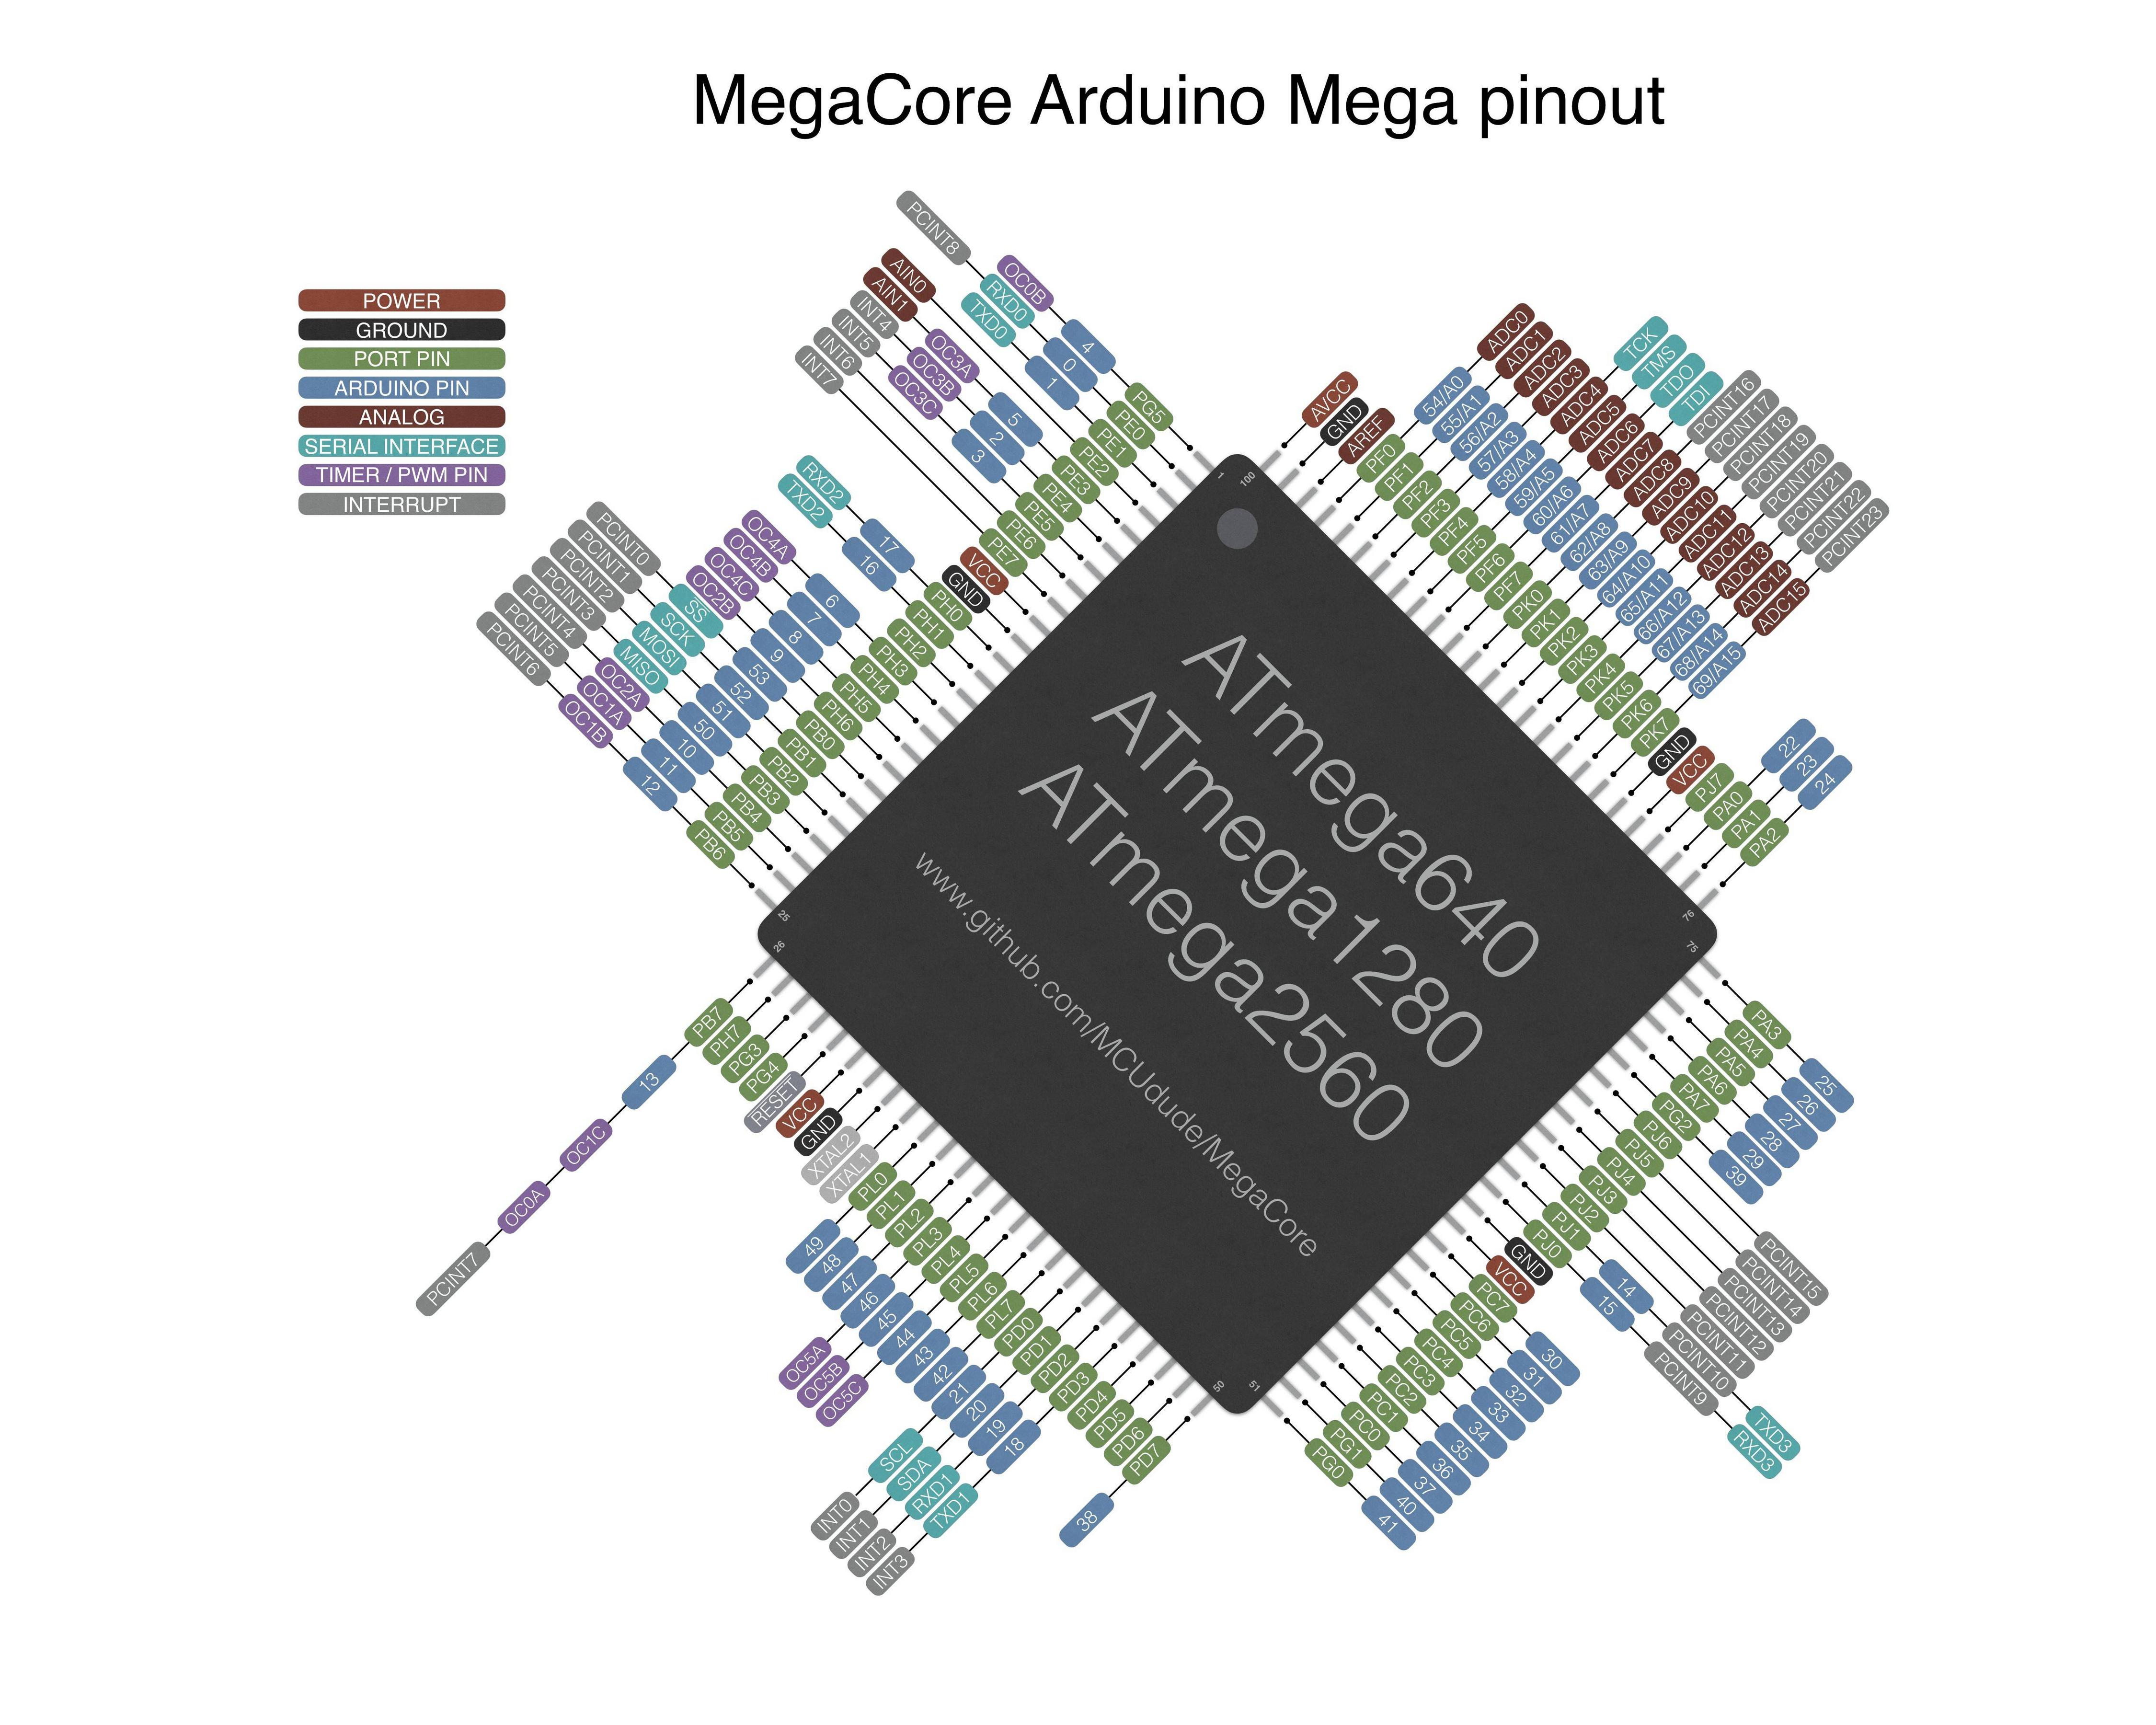 687474703a2f2f692e696d6775722e636f6d2f6b303057474c6b2e6a7067 github mcudude megacore an arduino hardware package for arduino mega wiring diagram at crackthecode.co